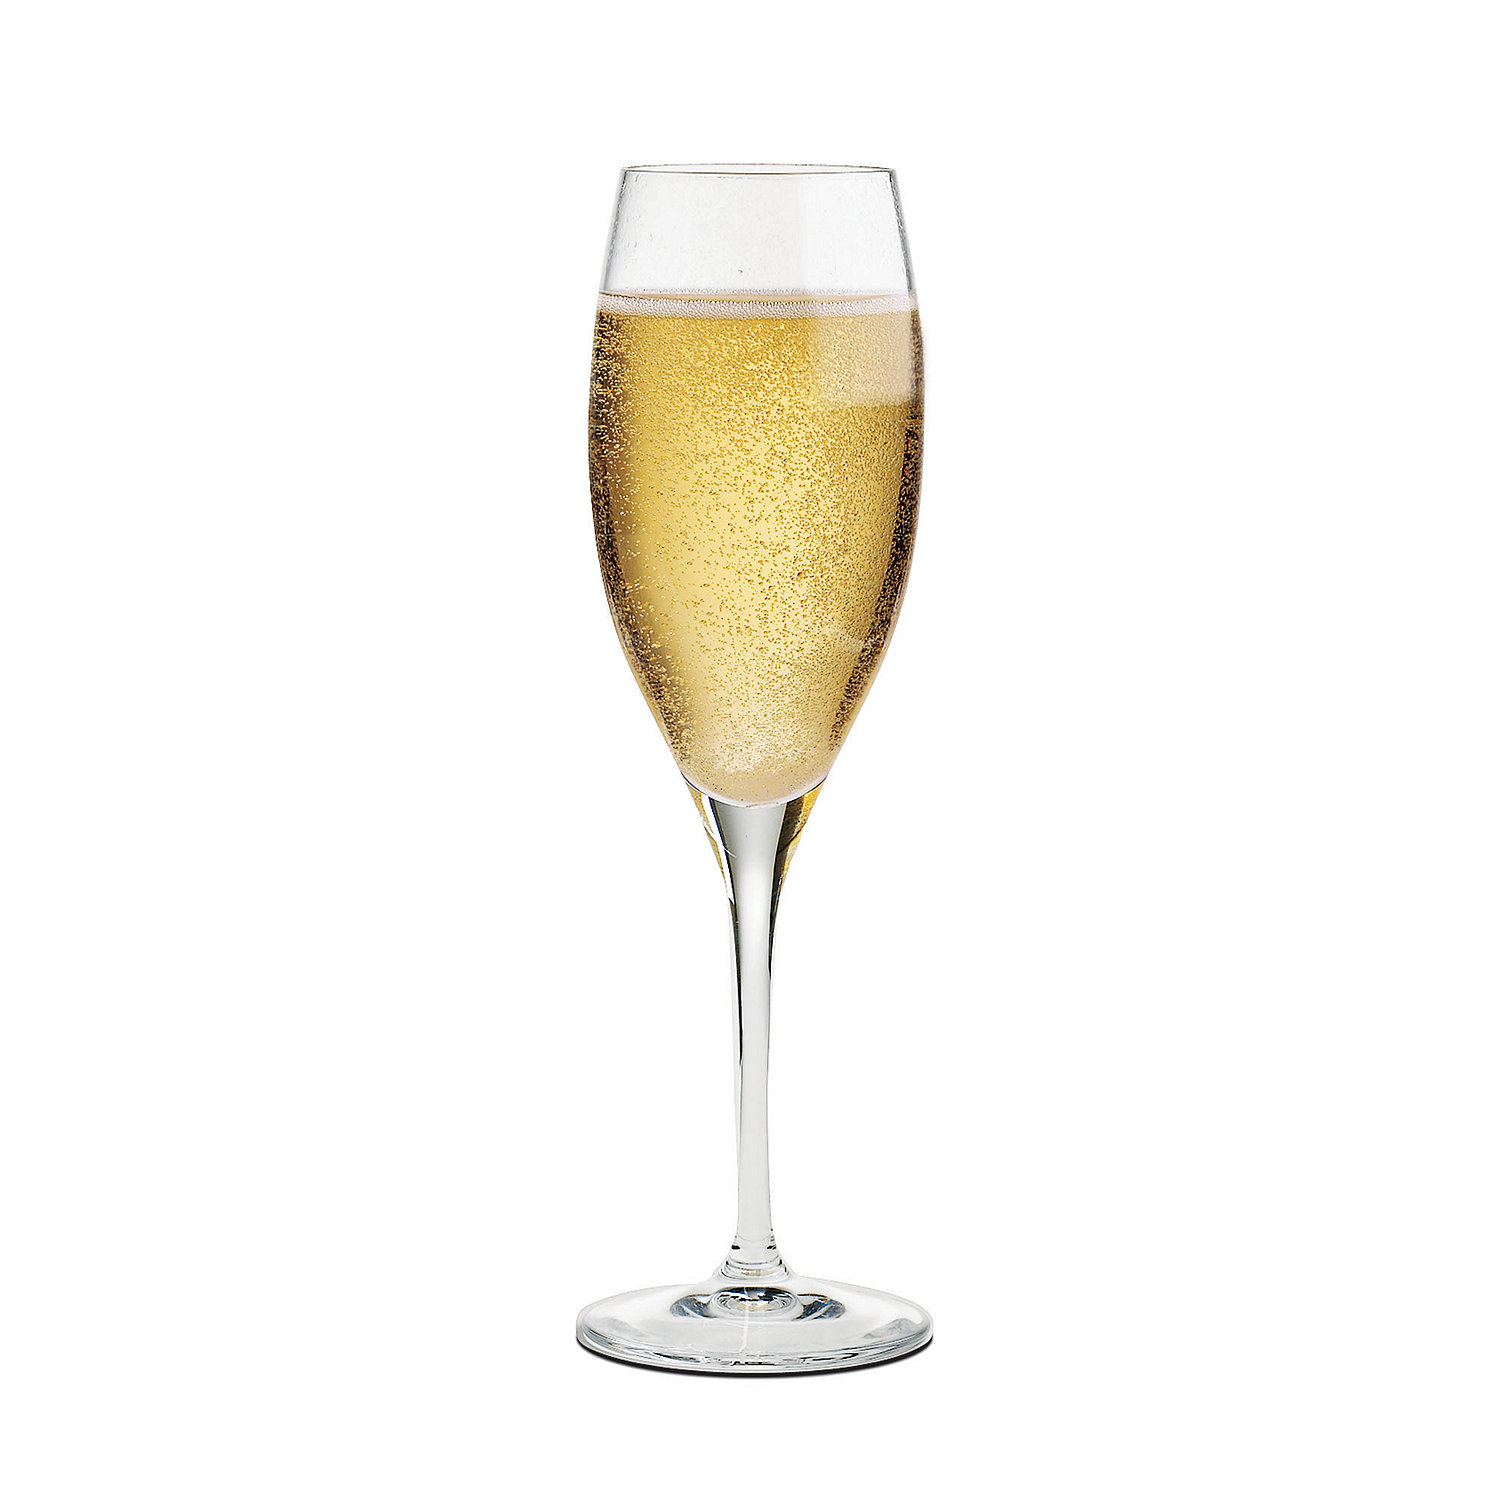 High Resolution Wallpaper | Champagne 1500x1500 px